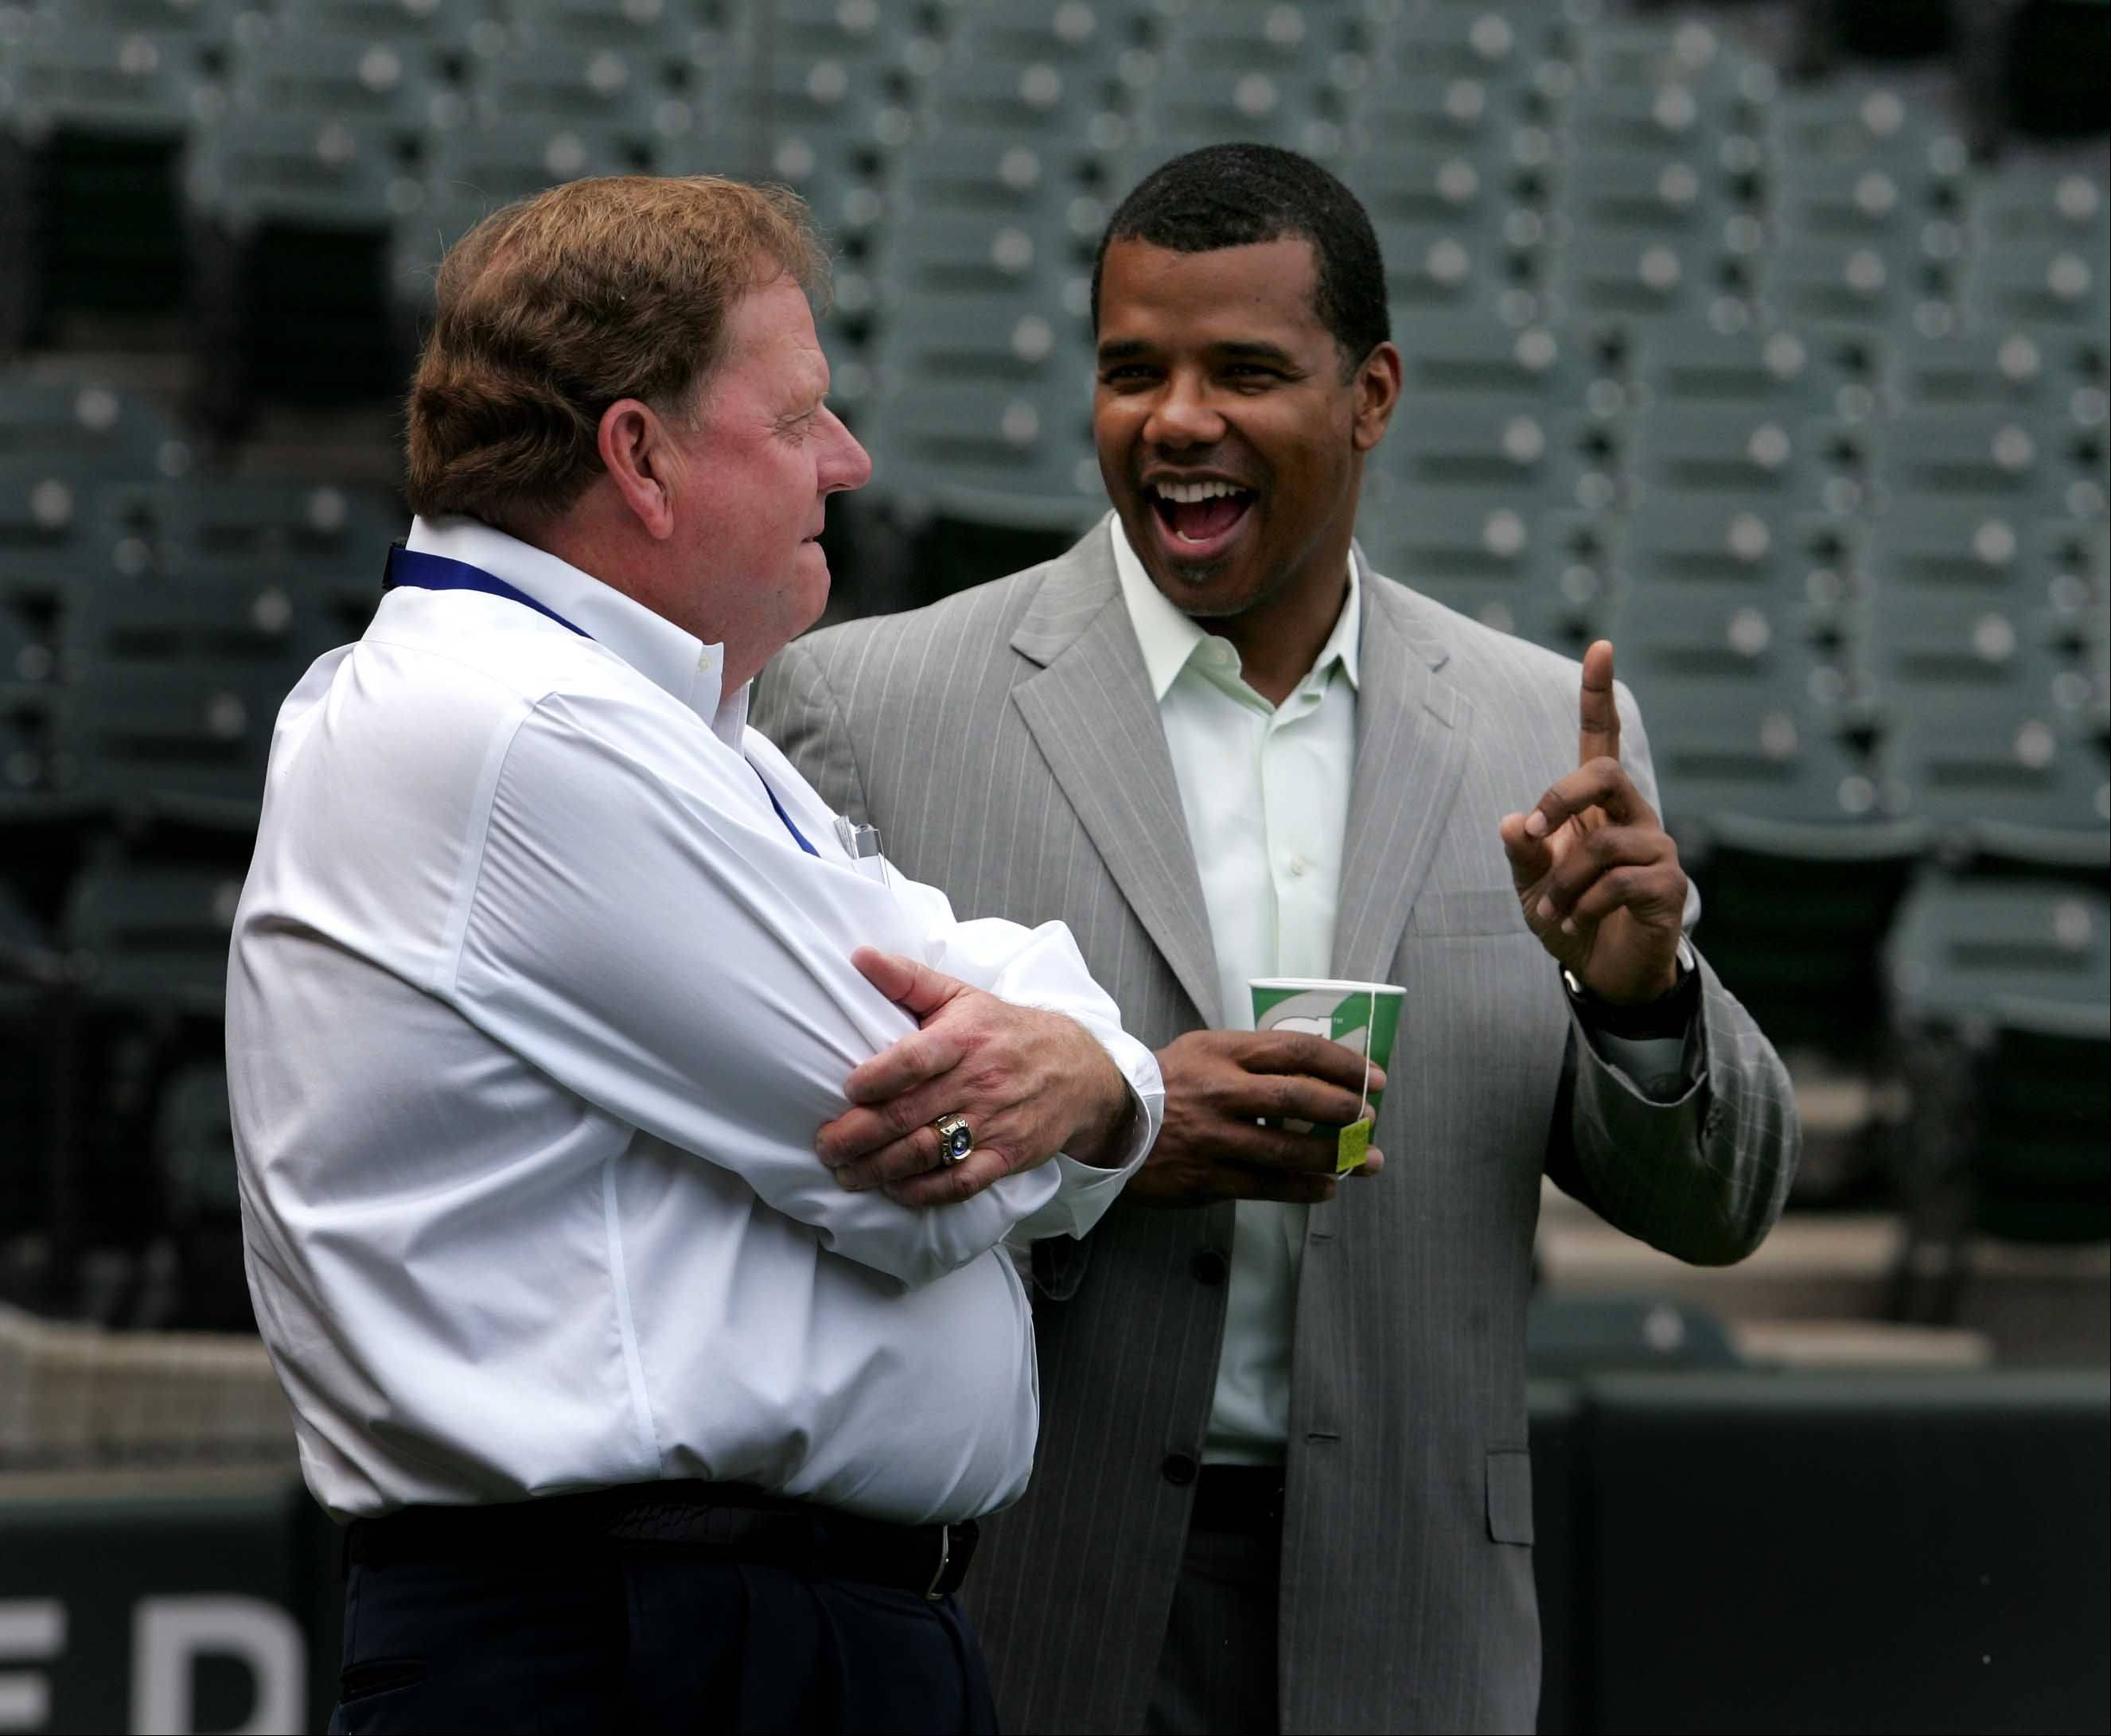 Chicago Cubs general manager Jim Hendry, left, chats with Chicago White Sox general manager Ken Williams before the Crosstown Classic Monday at U.S. Cellular Field.